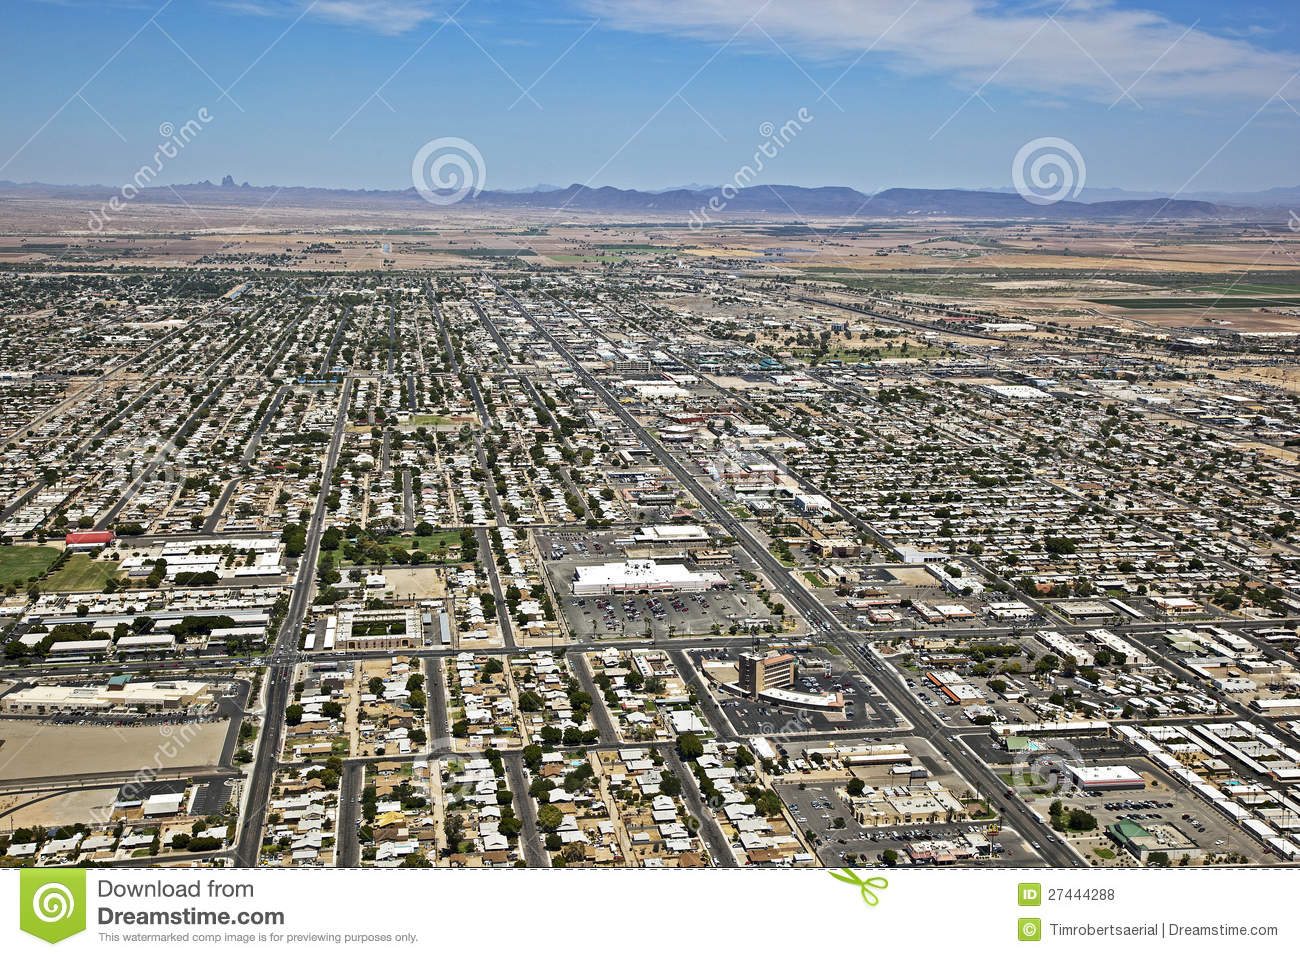 colorado map in usa with Royalty Free Stock Photos Skyline Yuma Arizona Image27444288 on Montana Lakes Are The Best together with Area Map likewise Cudillero asturias spain 13627 besides Walmart Gunnison Colorado Co Usa likewise 29139521910.